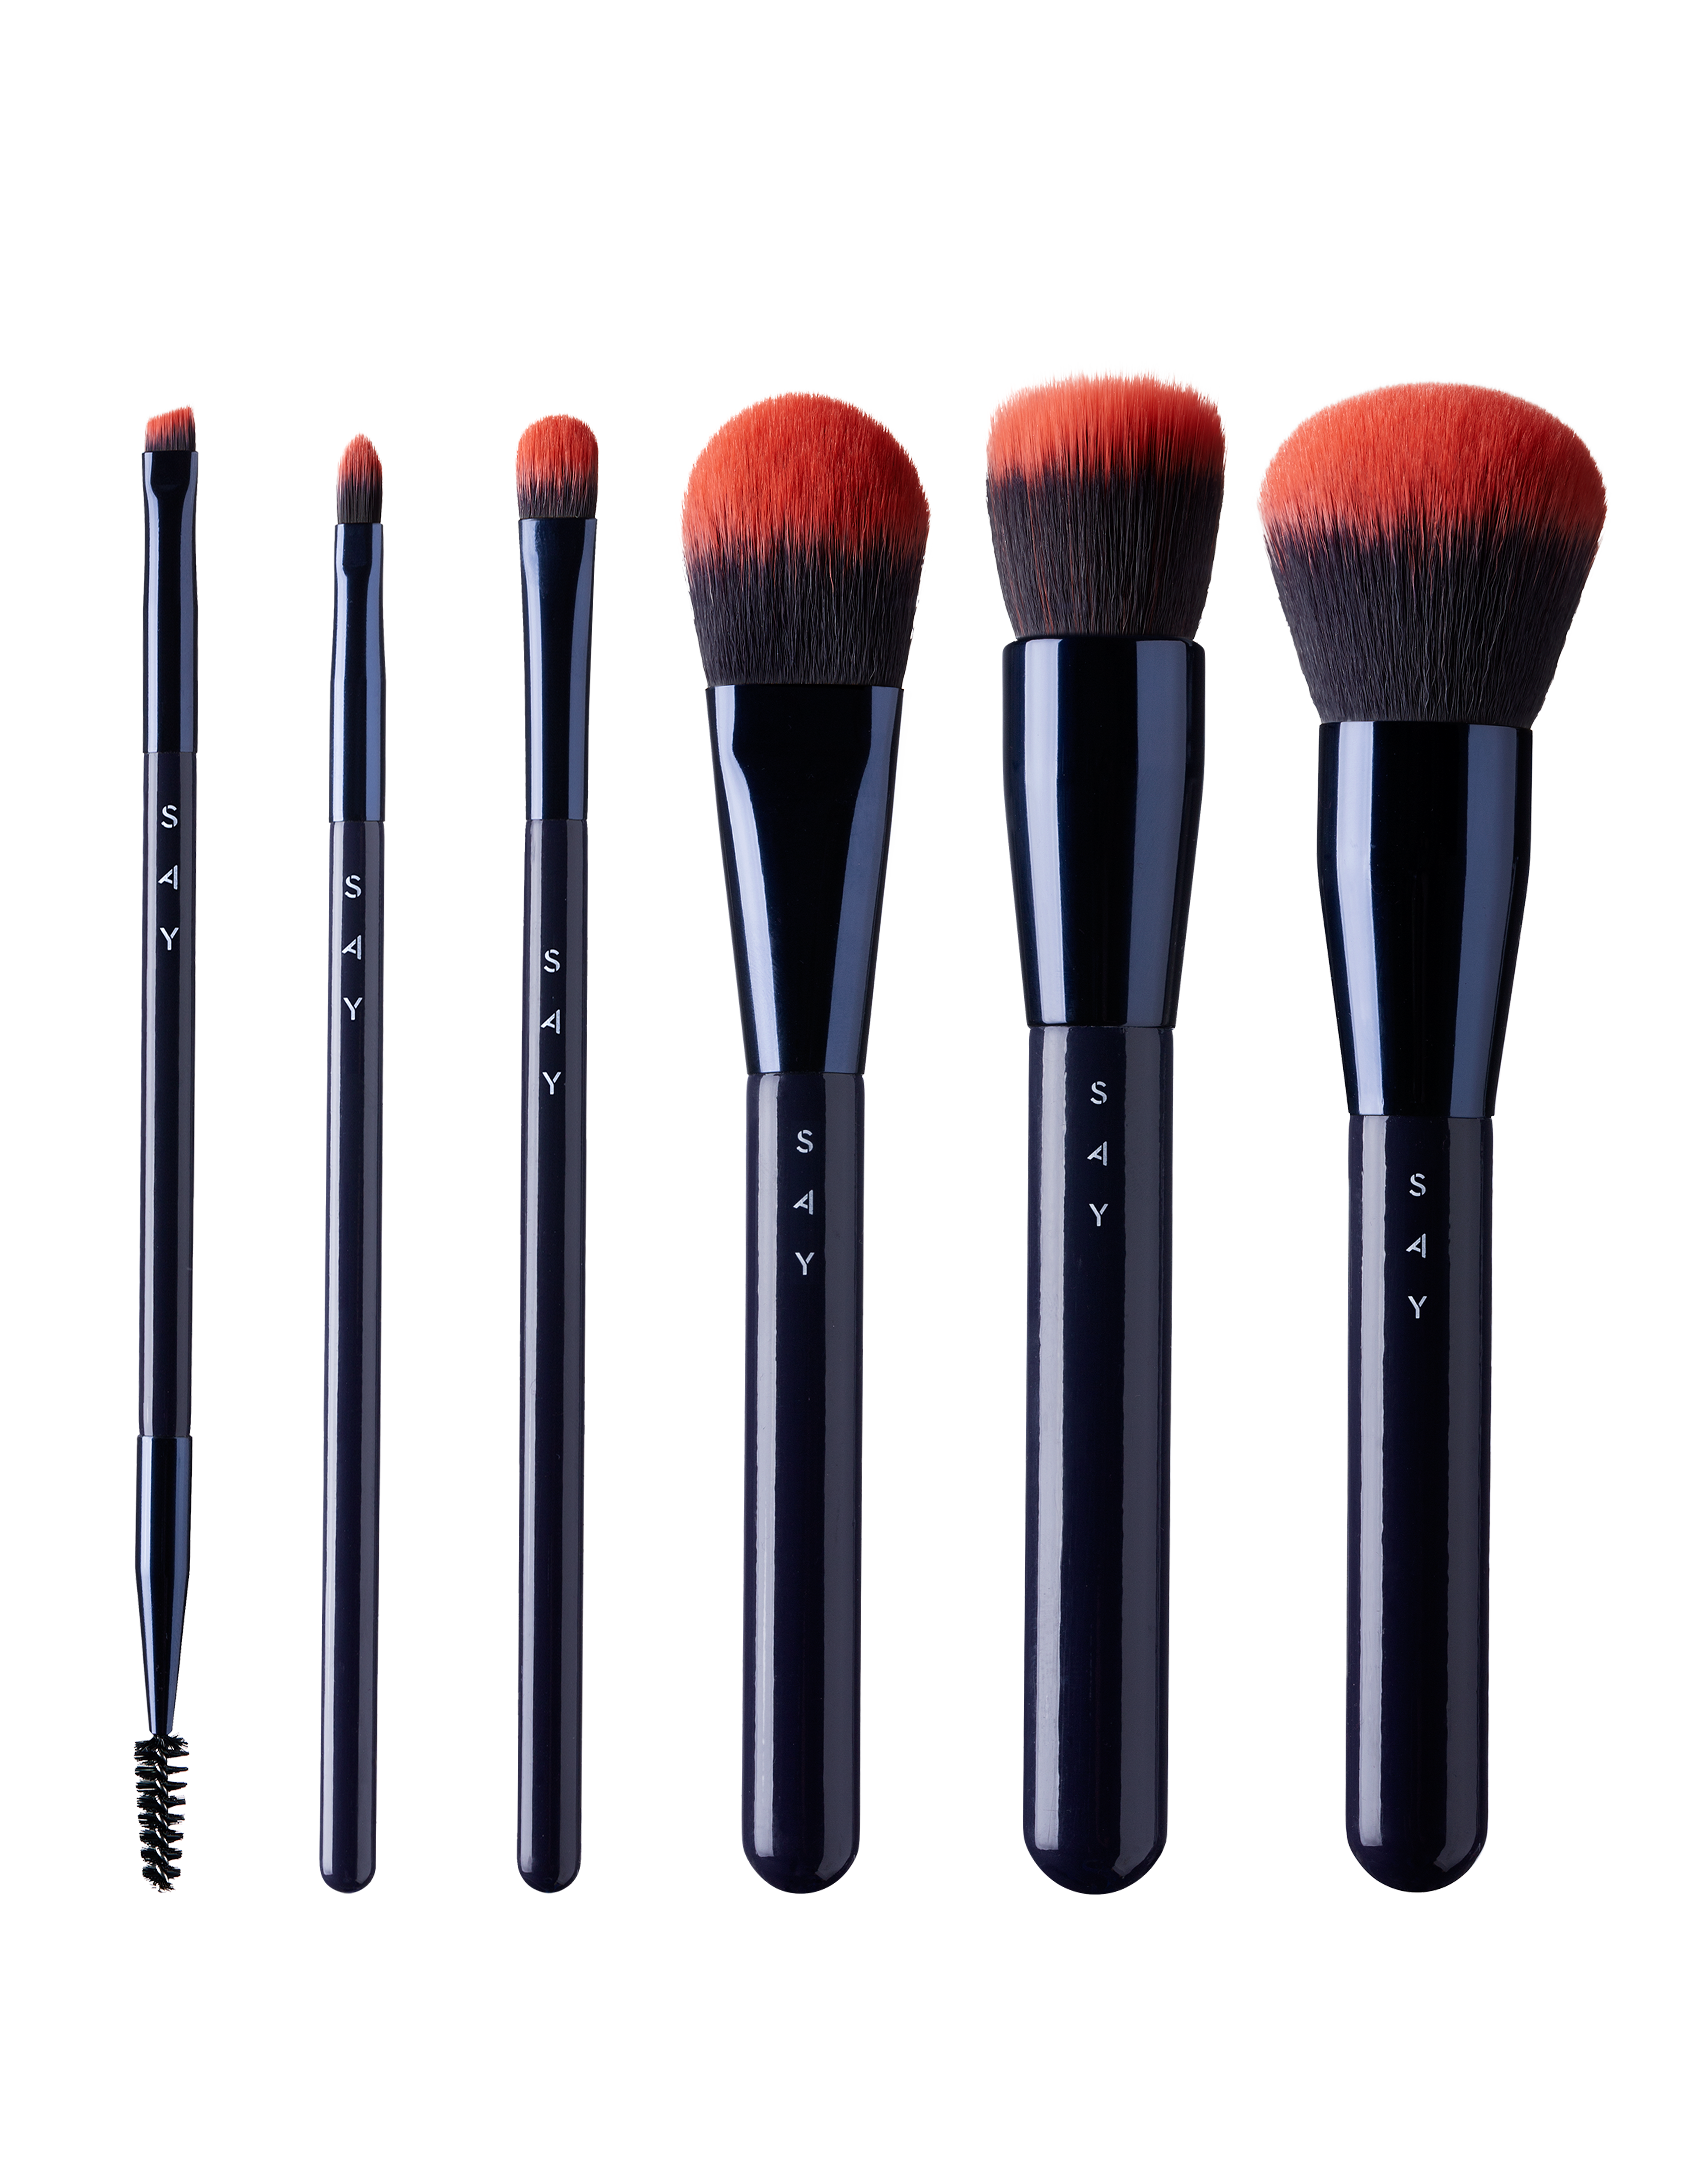 BASIC COLLECTION - 6 basic makeup brushes